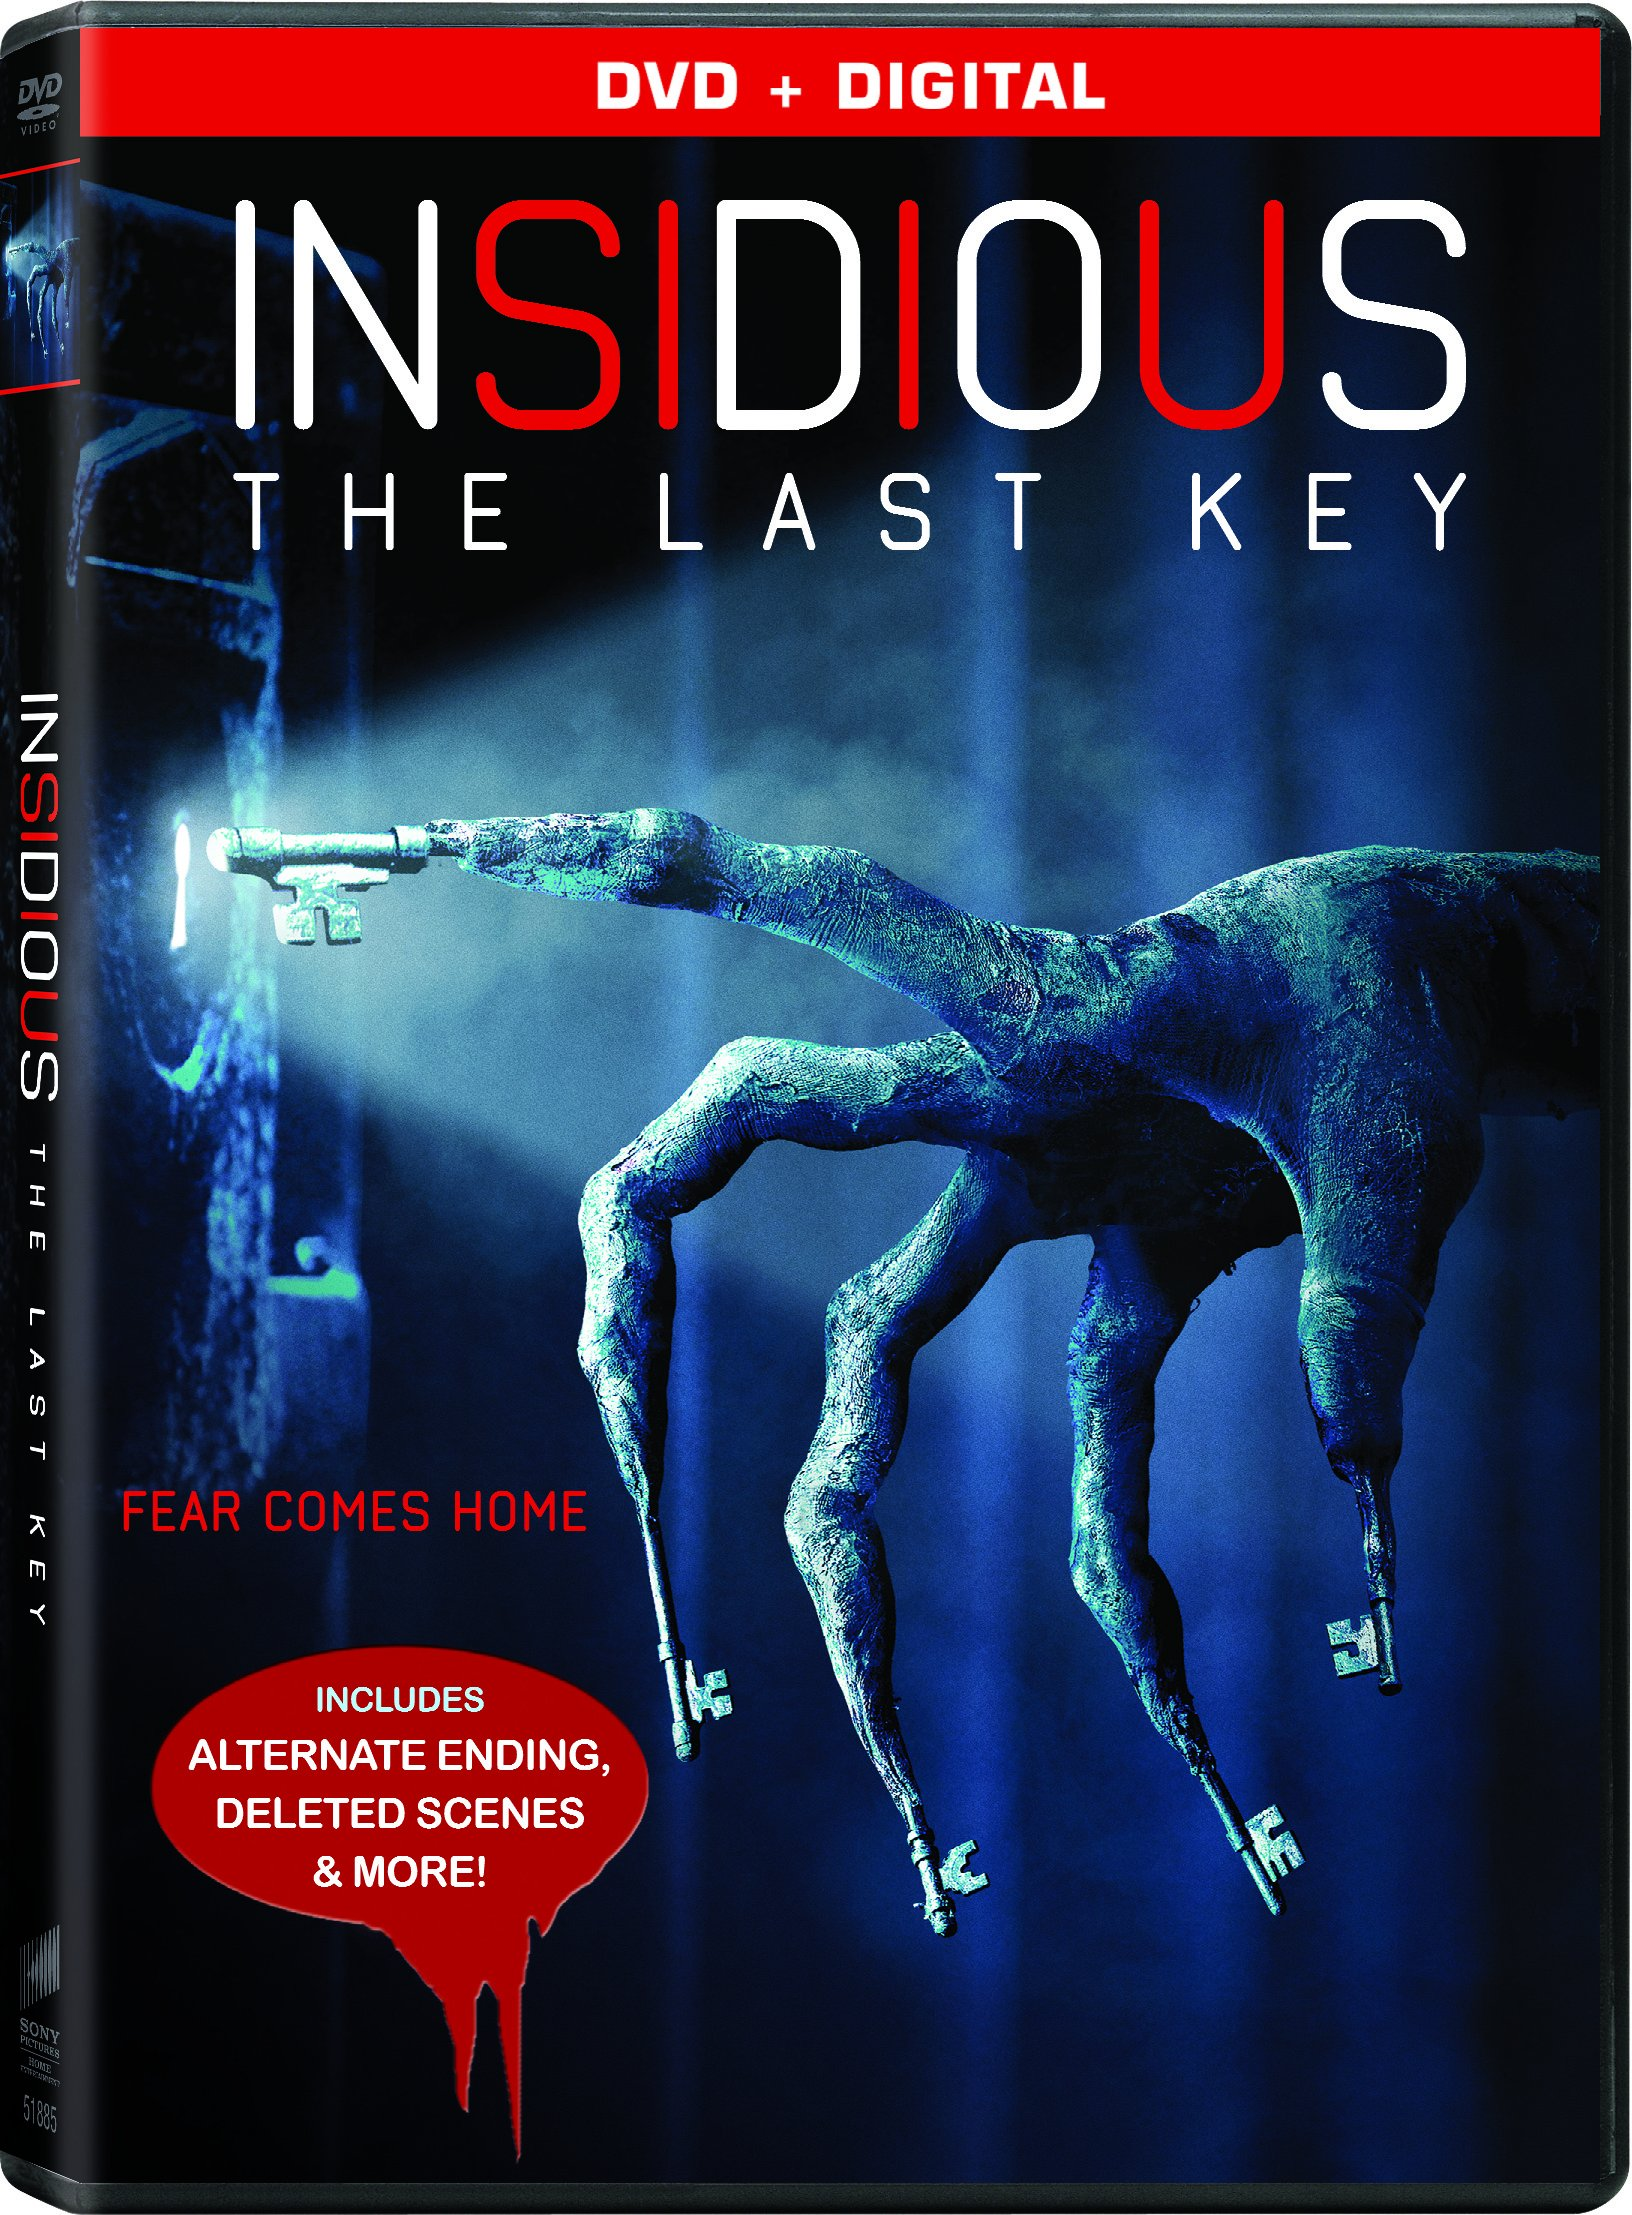 DVD : Insidious: The Last Key (Widescreen, Dolby, AC-3, Subtitled)